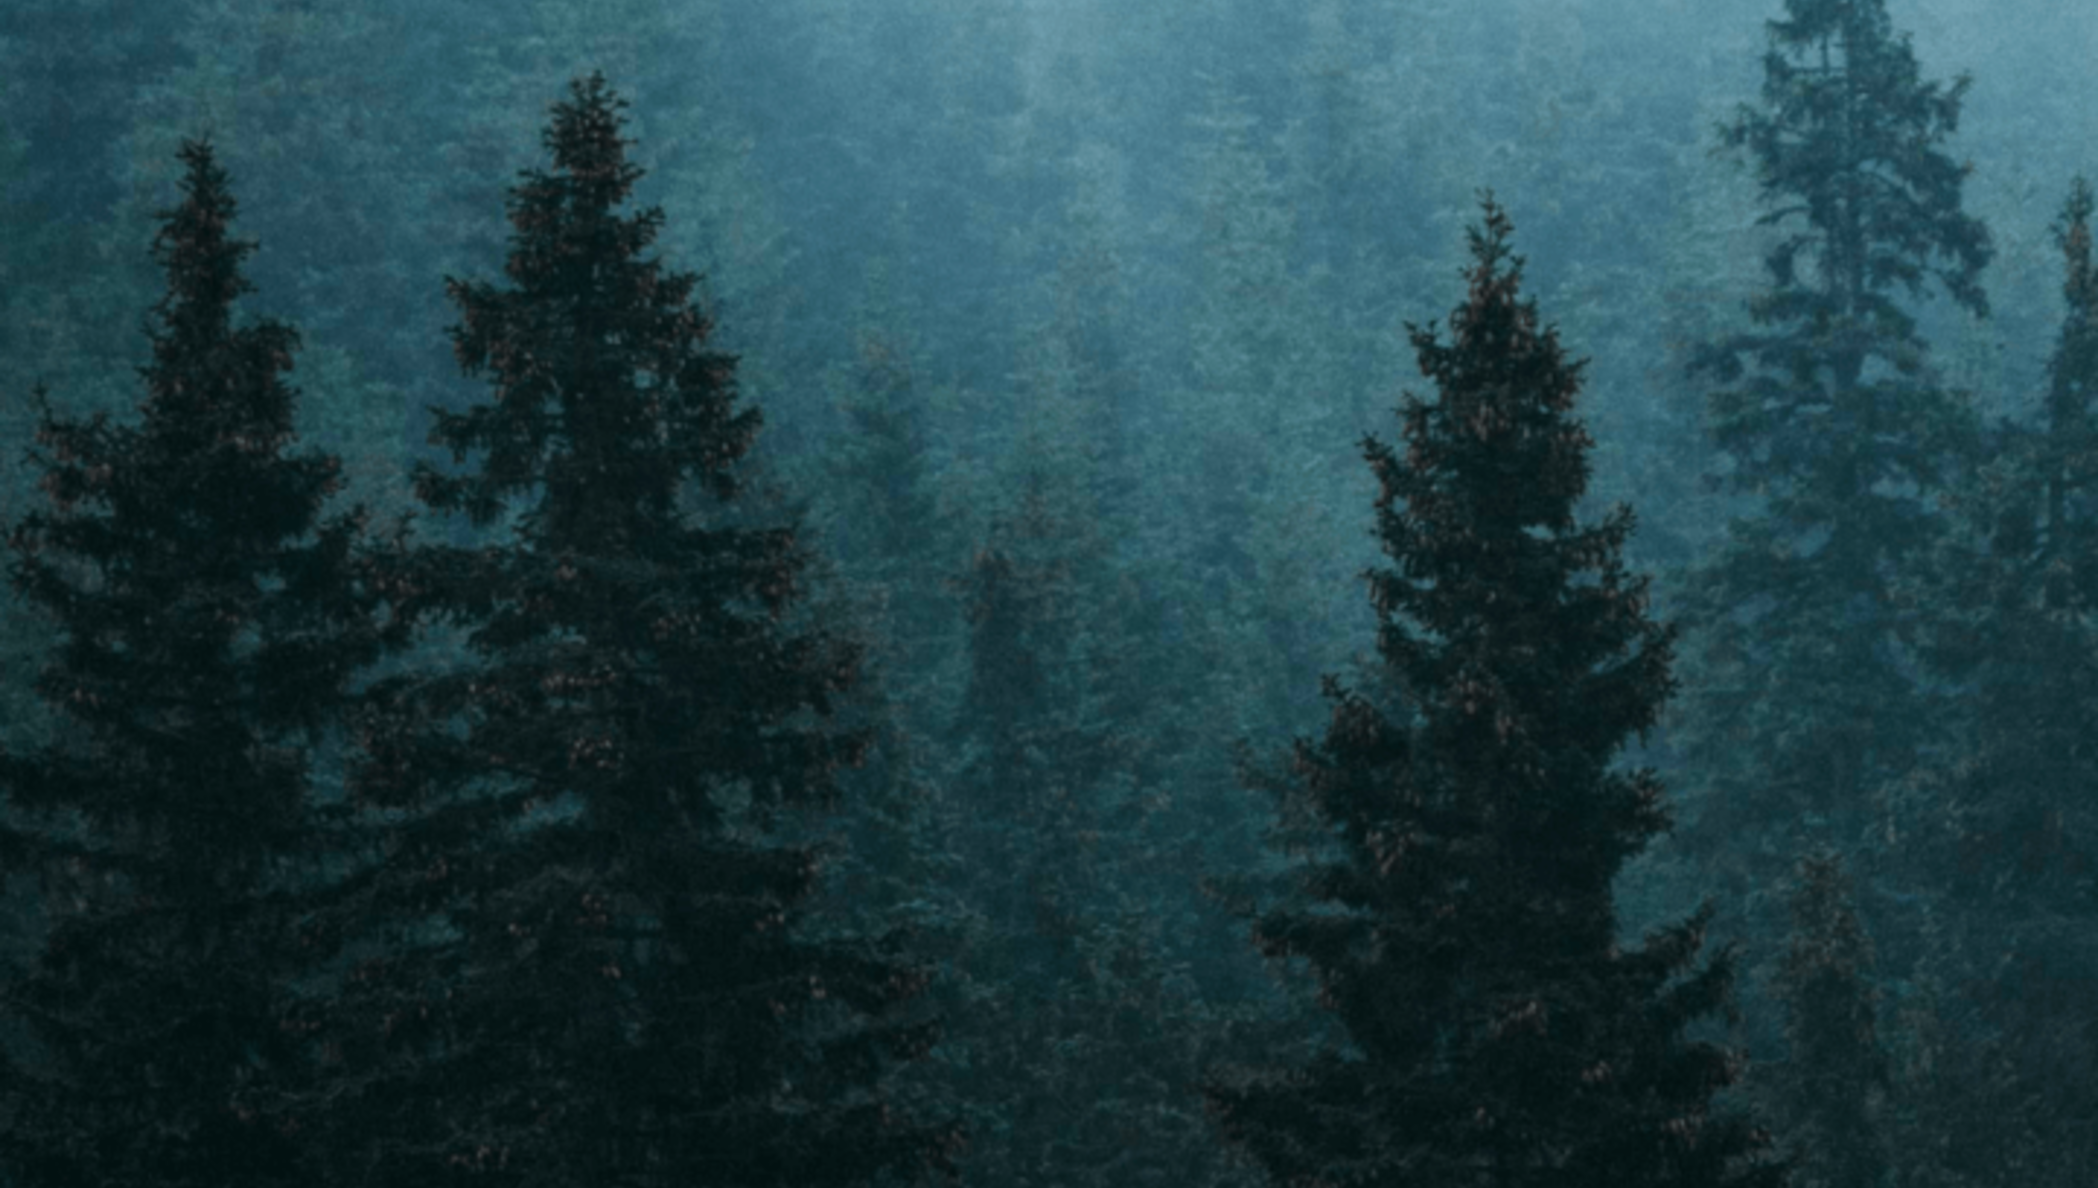 An aerial view of evergreen trees in a forest.